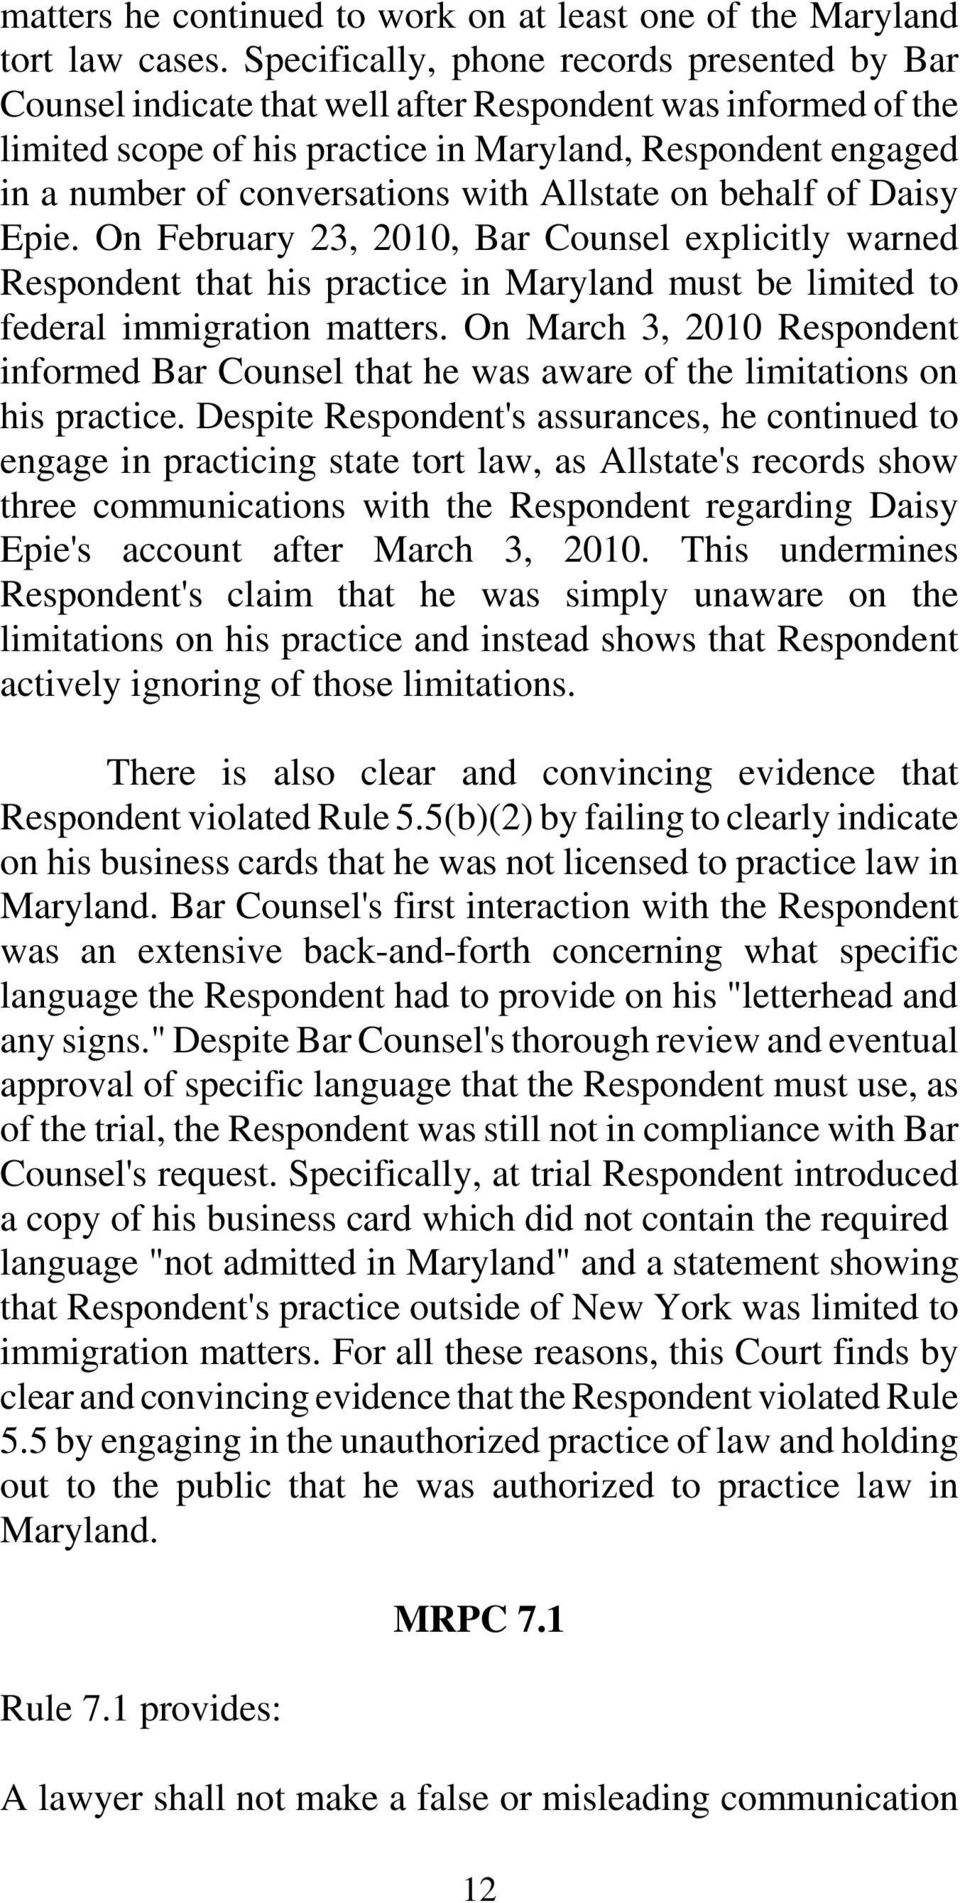 with Allstate on behalf of Daisy Epie. On February 23, 2010, Bar Counsel explicitly warned Respondent that his practice in Maryland must be limited to federal immigration matters.